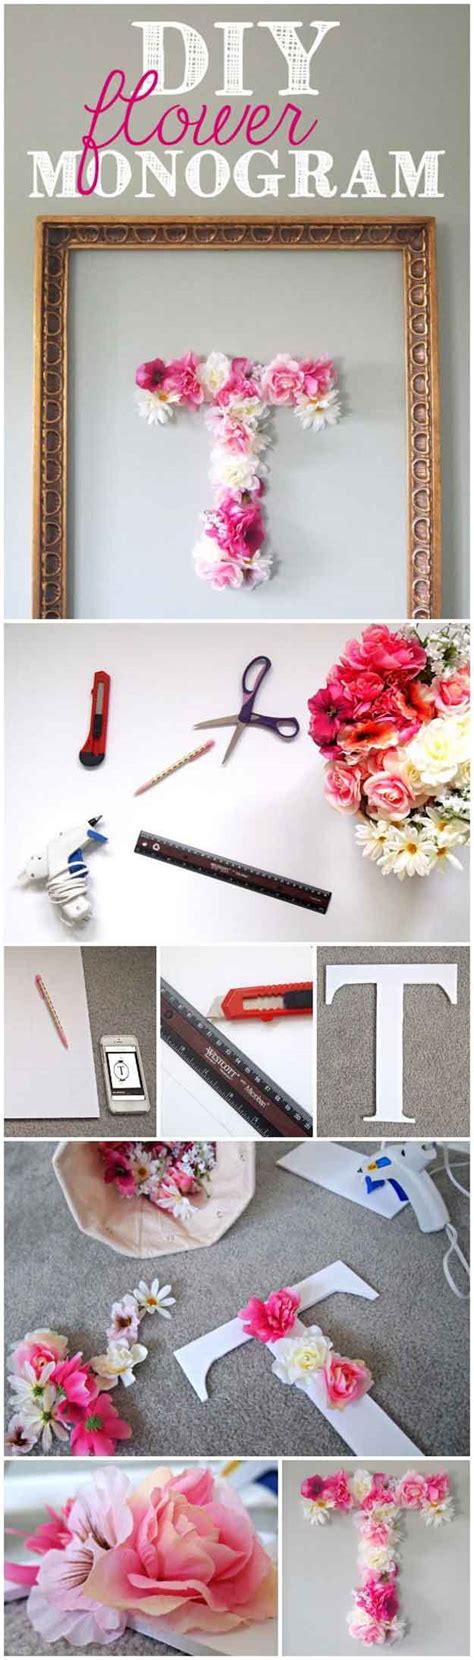 easy diy bedroom decor diy projects for teens bedroom diy ready